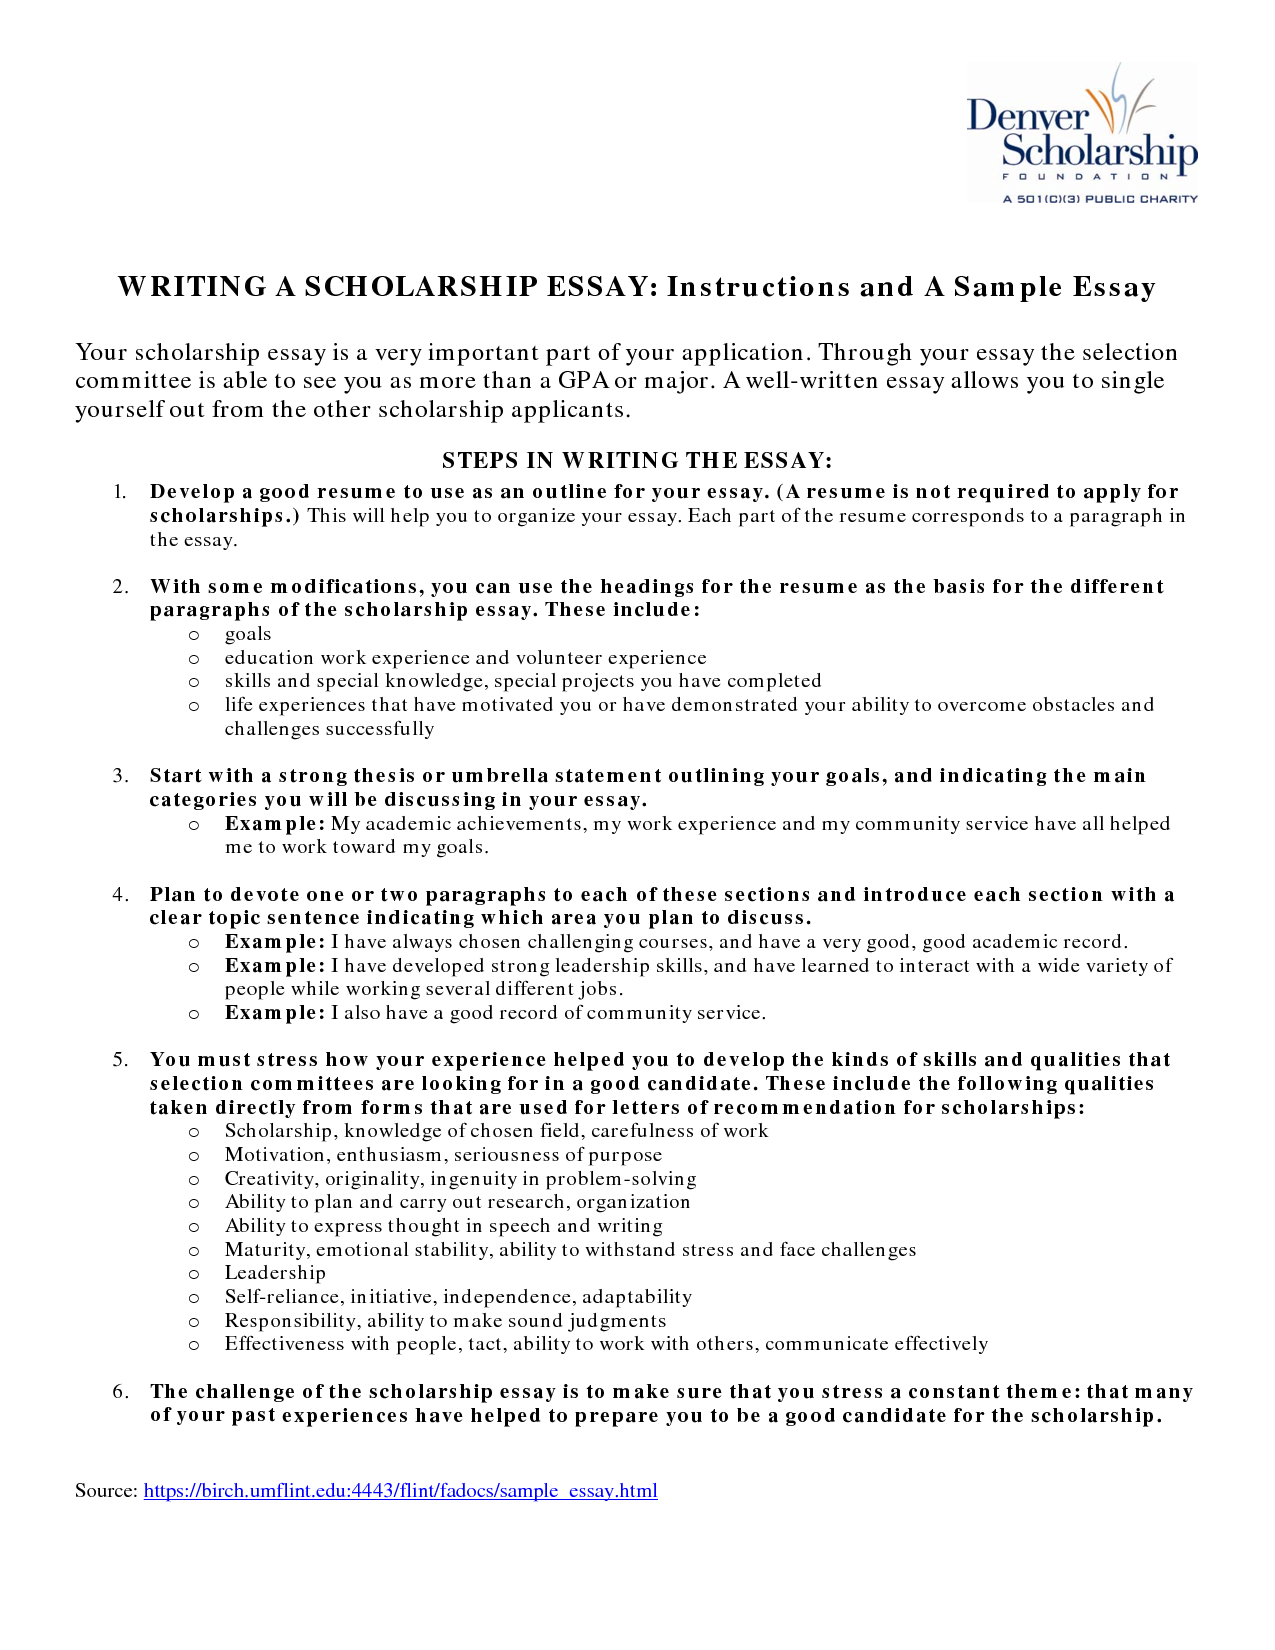 How To Write A Reflection Paper On A Reading